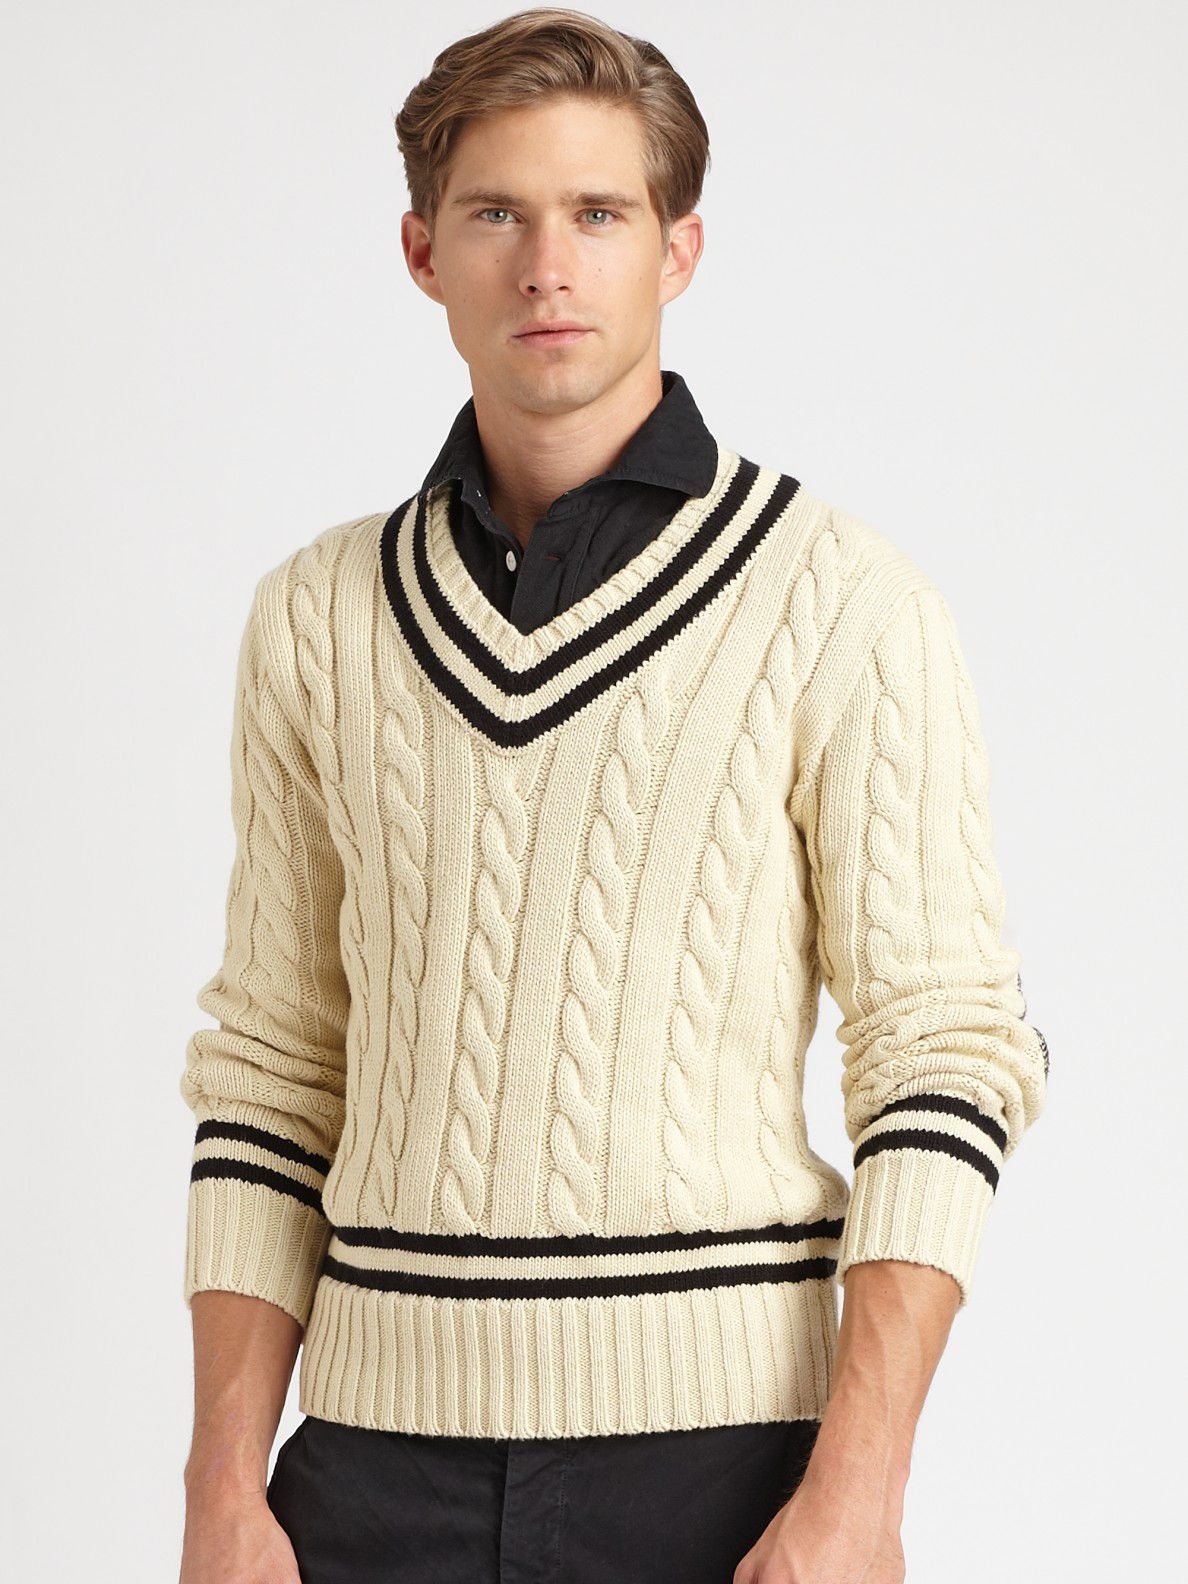 6b5c33df9 Polo Ralph Lauren Cabled V-neck Cricket Sweater in Natural for Men ...